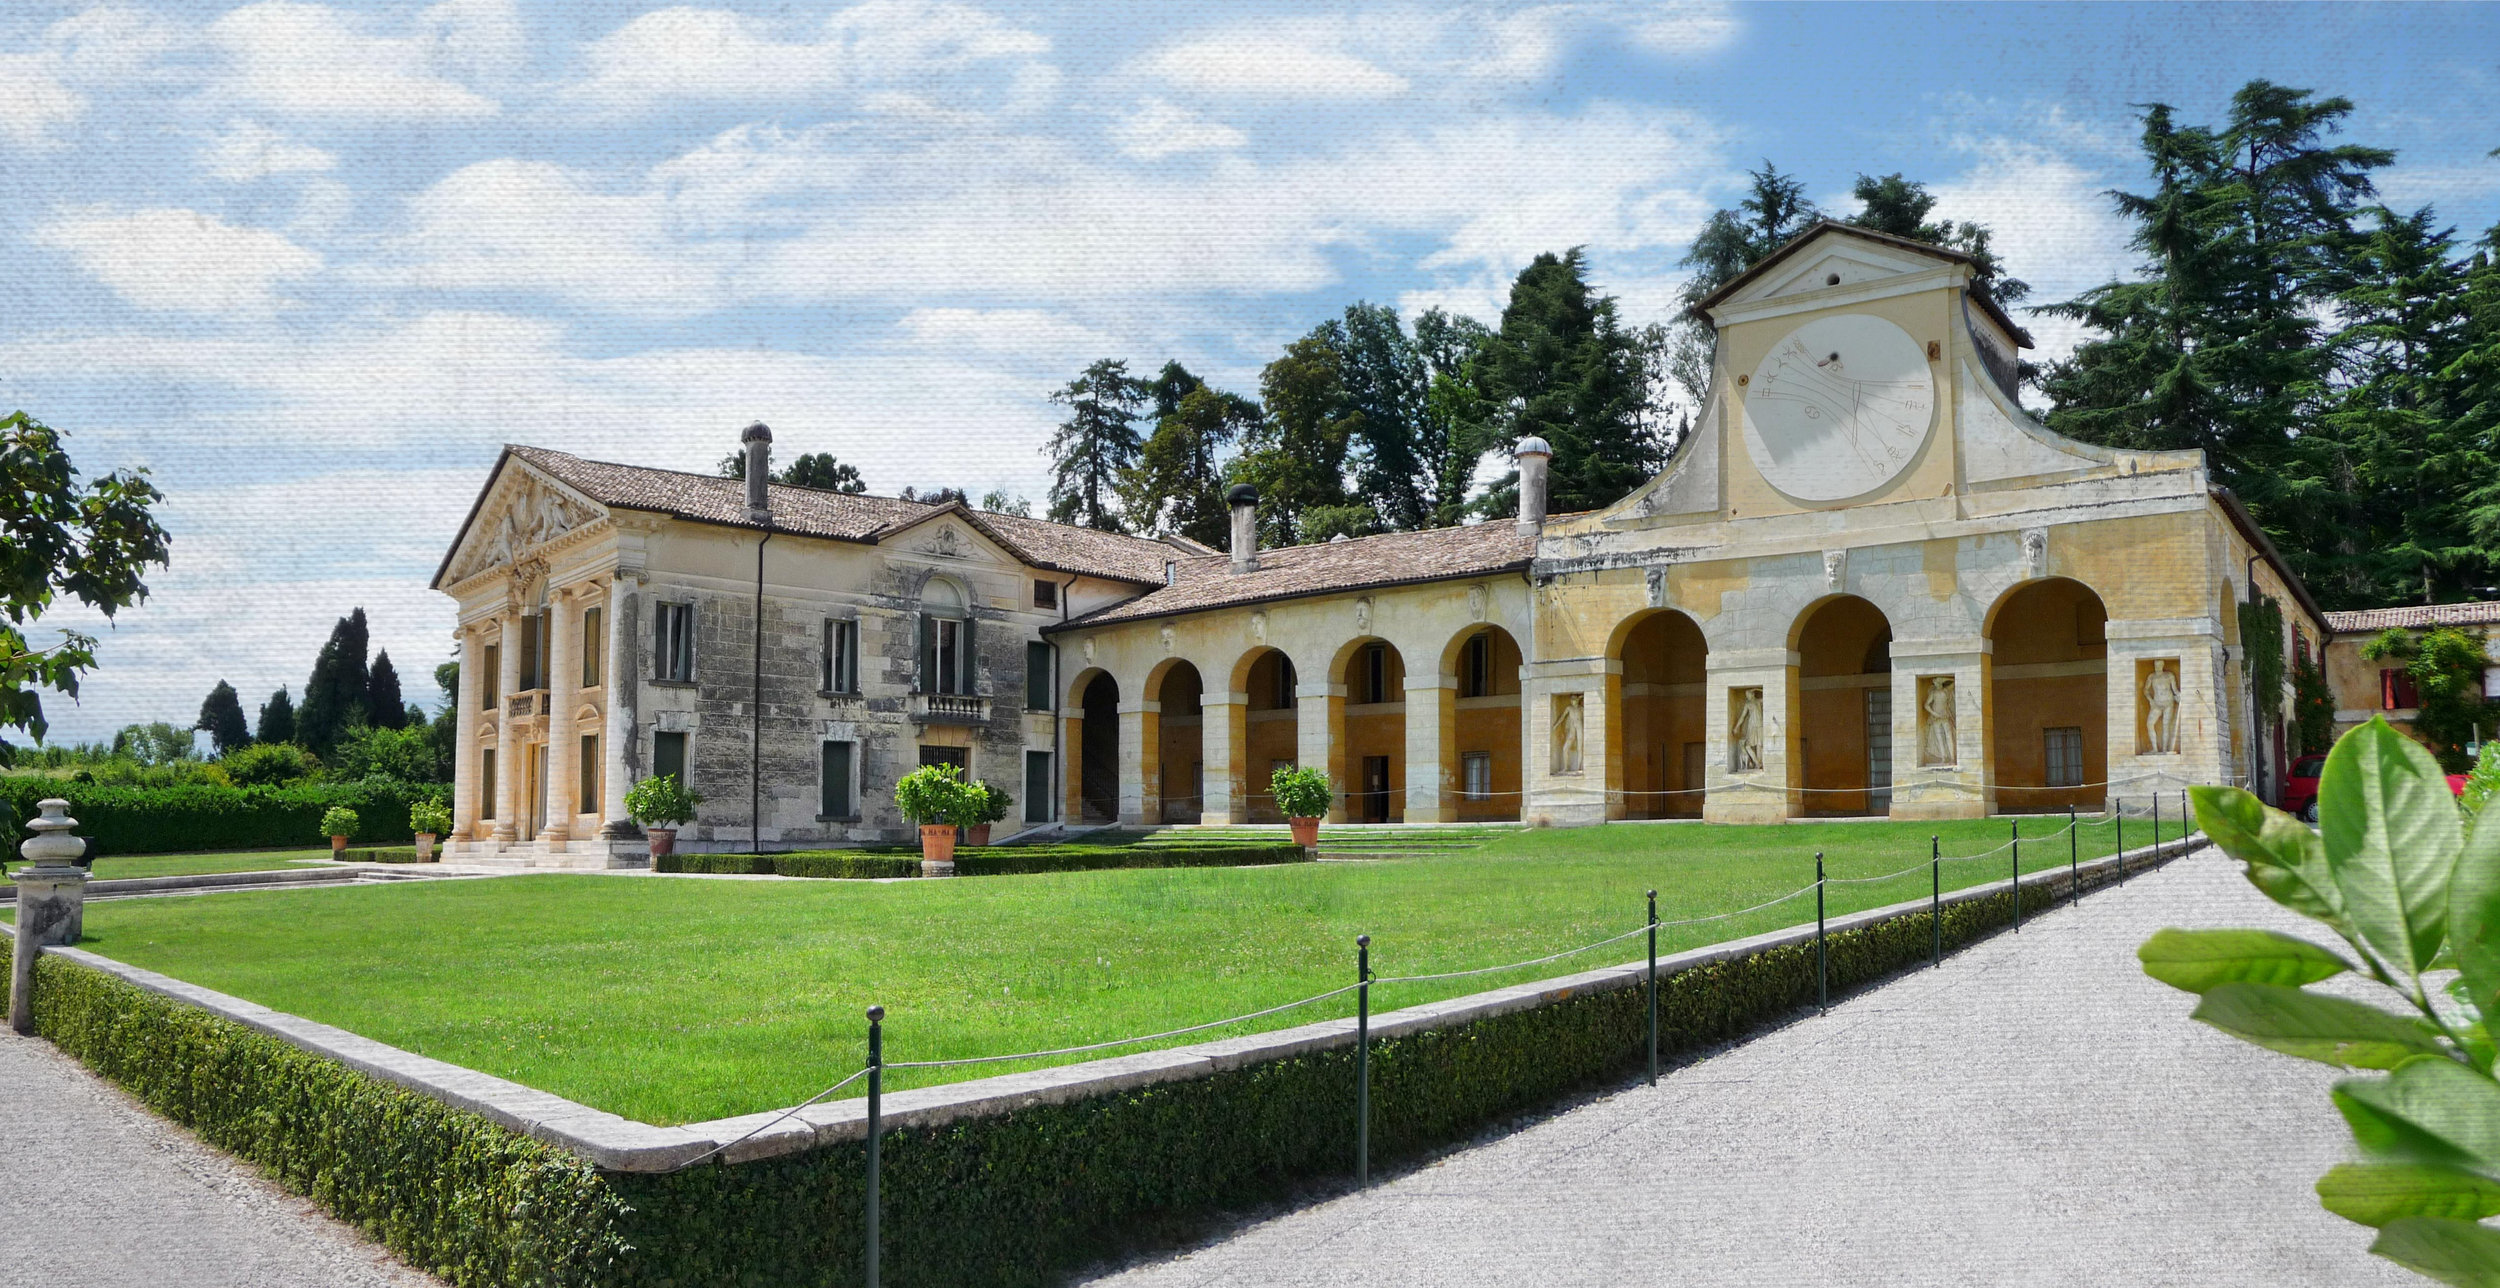 Author: Marcok. Villa Barbaro in Maser, province of Treviso, Italy, built by Andrea Palladio between 1554 and 1560 for the brothers Daniele and Marcantonio Barbaro.